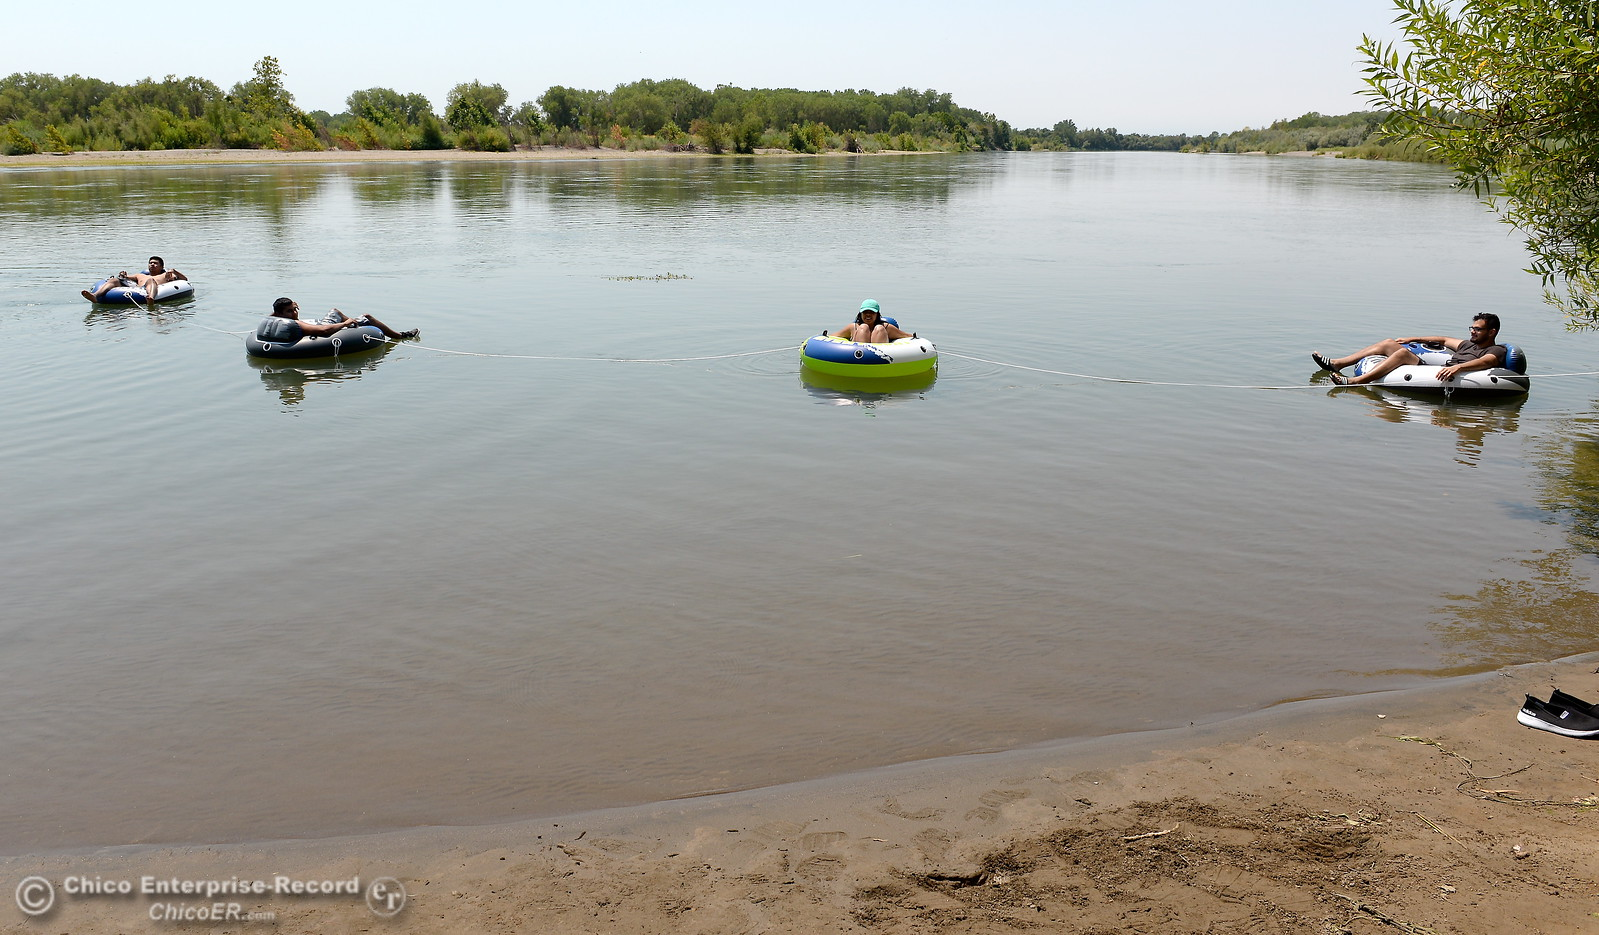 A group from Chico and Orland enjoy a float on the Sacramento River near the Pine Creek inlet Monday July 31, 2017. Left to right are Mark Bungay, Edwardo Rios, Adriana Pano and Gilberto Rios-Torres.  (Bill Husa -- Enterprise-Record)